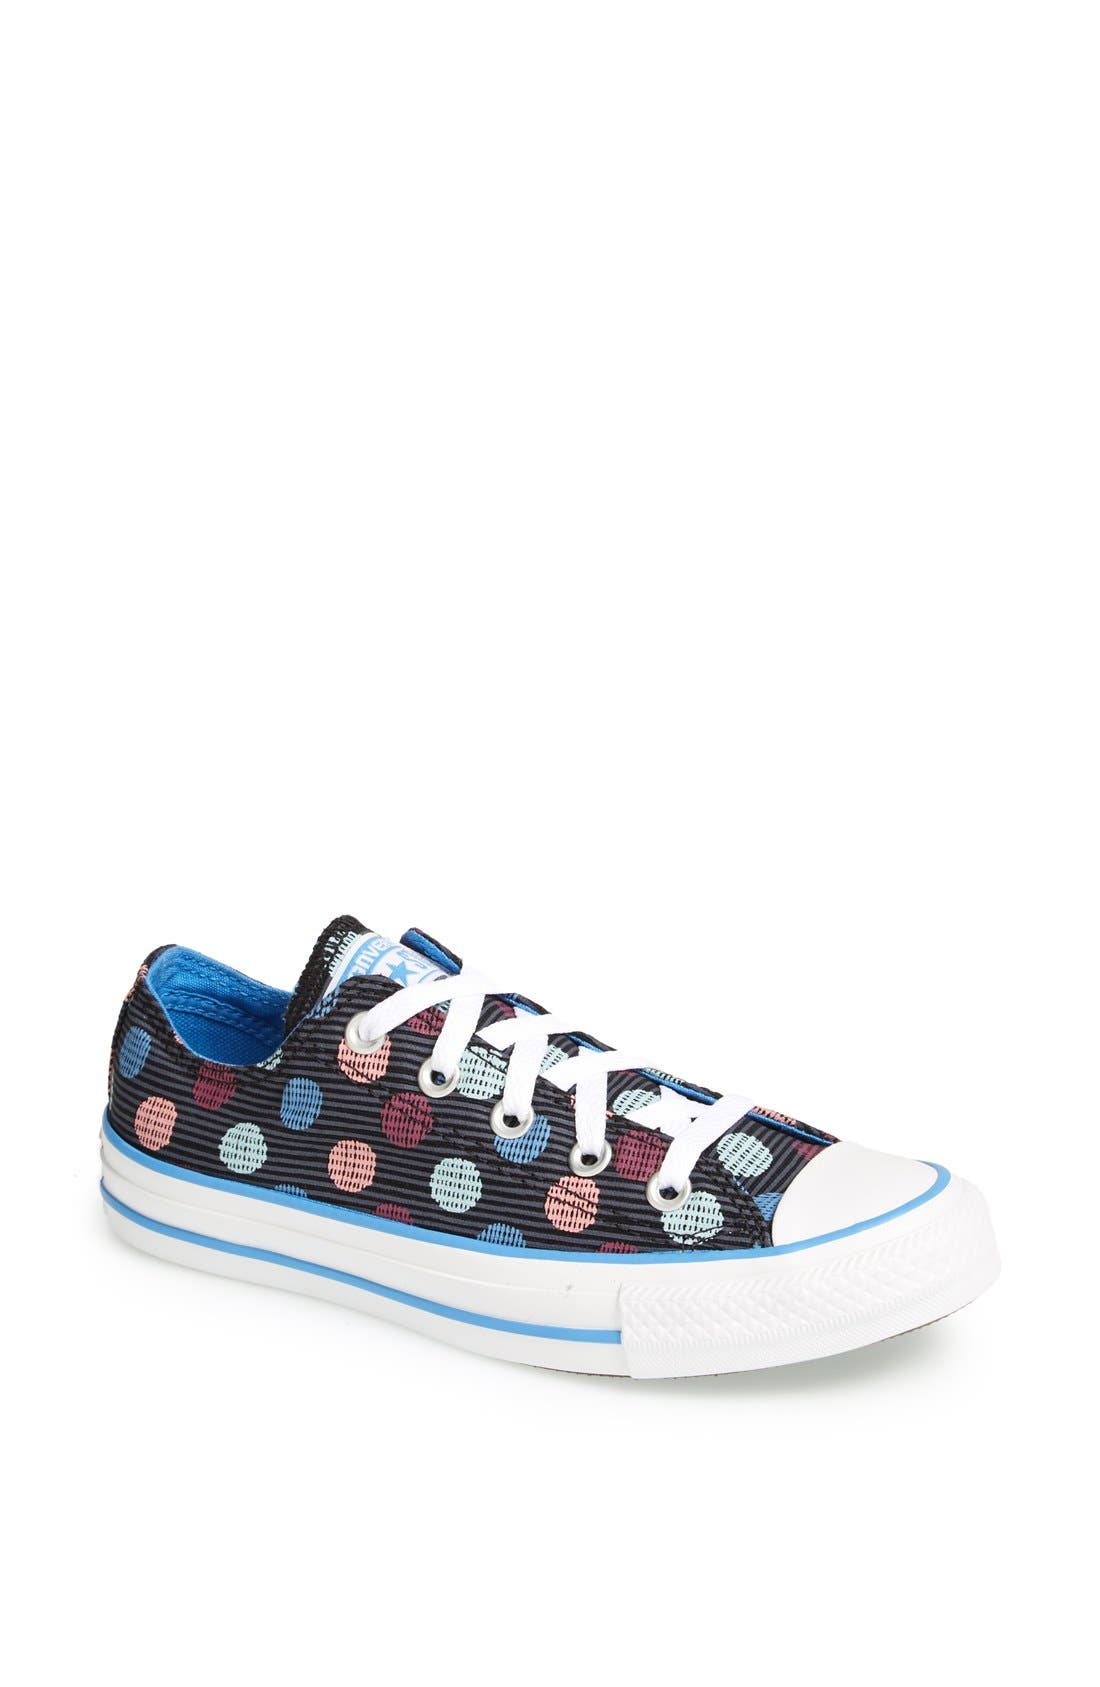 Alternate Image 1 Selected - Converse Chuck Taylor® All Star® 'Polka Dot Ox' Sneaker (Women)